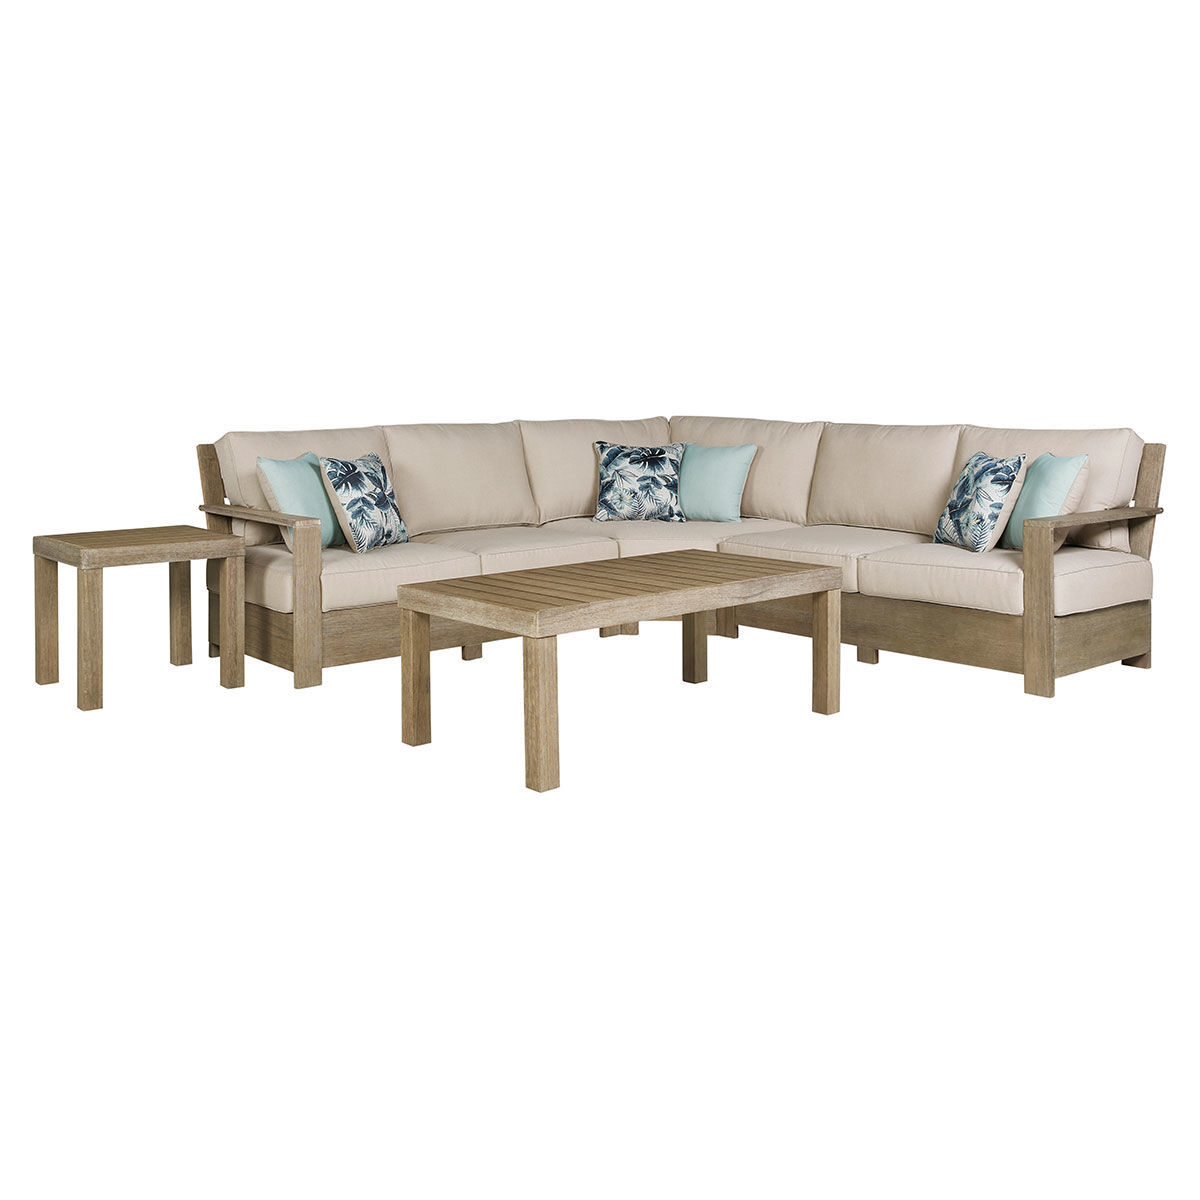 Picture of PANAMA 3PC PATIO SECTIONAL KIT